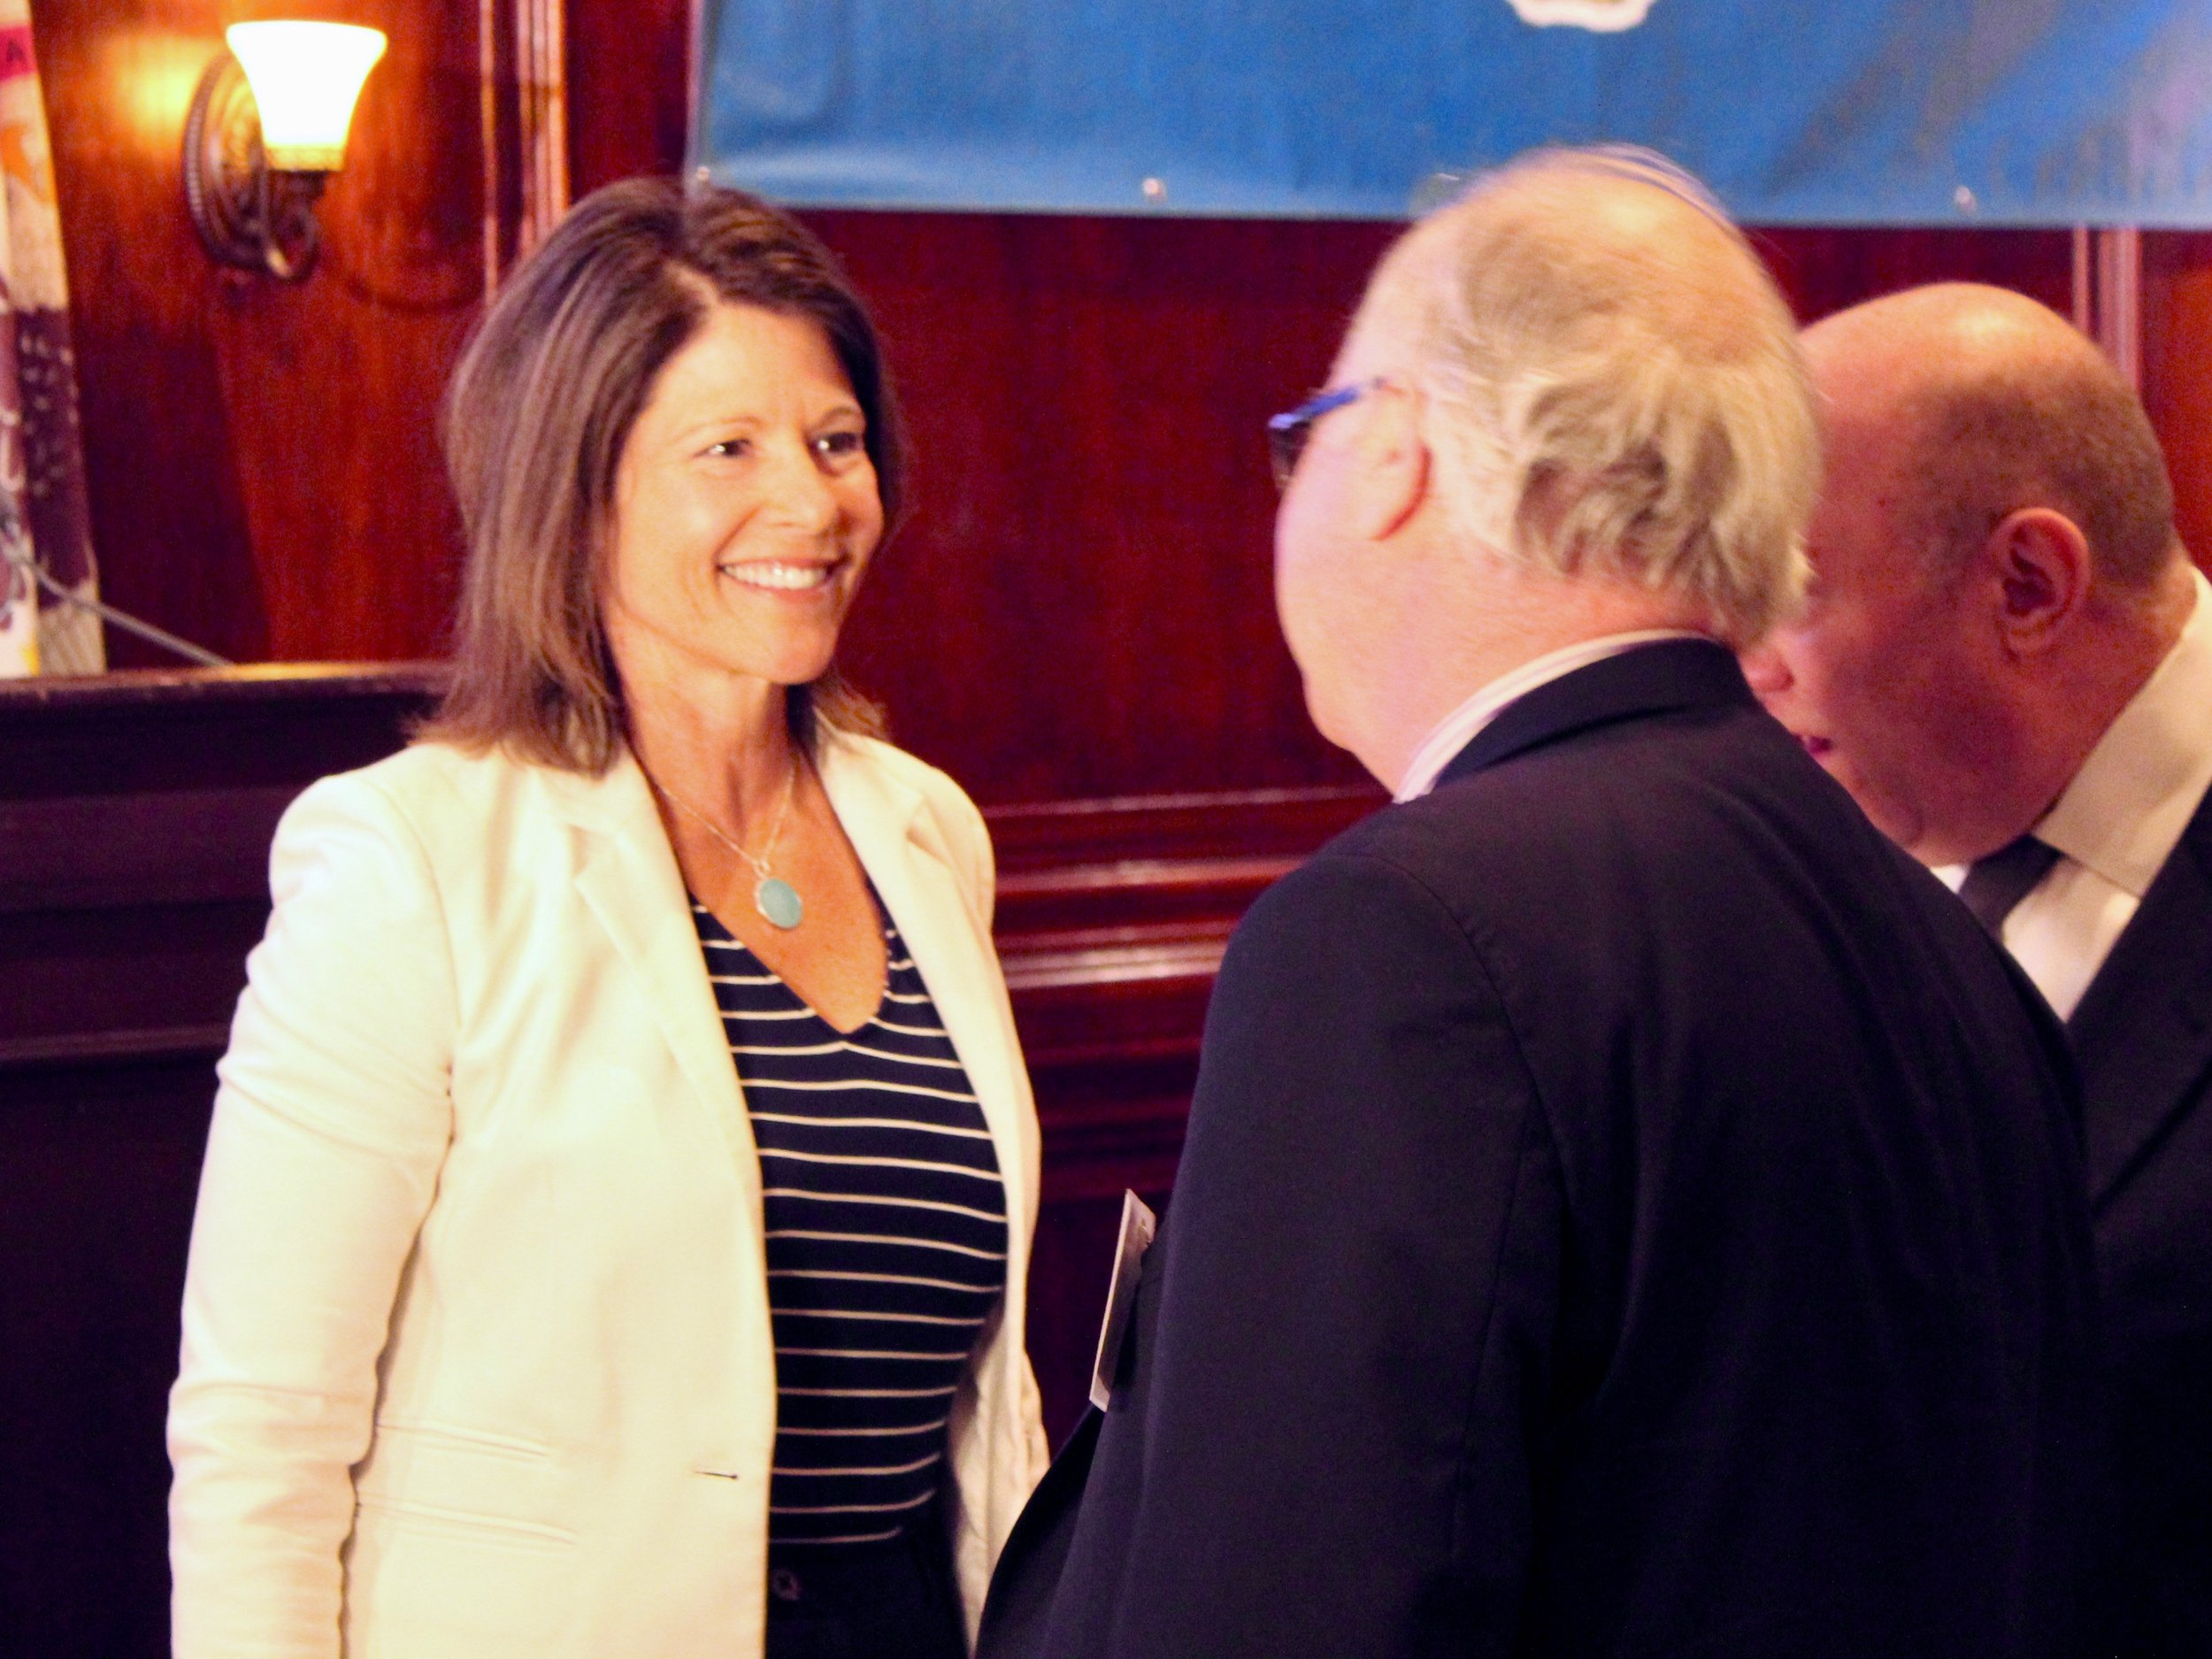 """""""The completion of a rail line from Moline to Chicago would help grow the local economy, create jobs, and connect folks from across our state with new opportunities."""" - U.S. Rep. Cheri Bustos (One Illinois/Ted Cox)"""